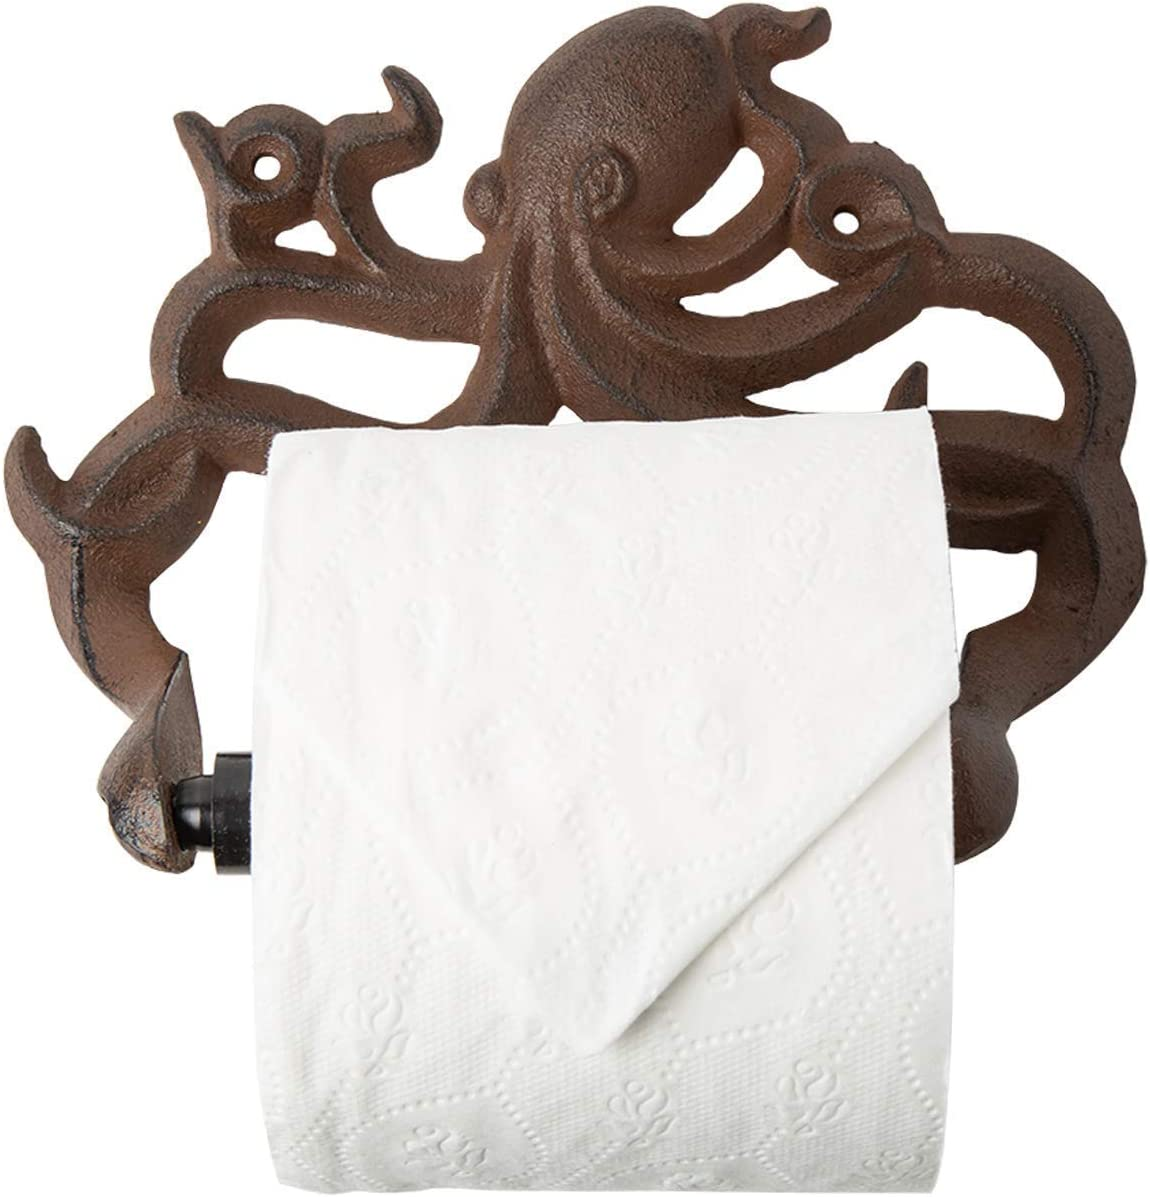 Decorative Cast Iron Octopus Toilet Paper Roll Holder – Wall Mounted Octopus Décor for Bathroom – Kraken, Nautical Bathroom Accessories – Easy to Install with Included Screws and Anchors - Rust Brown